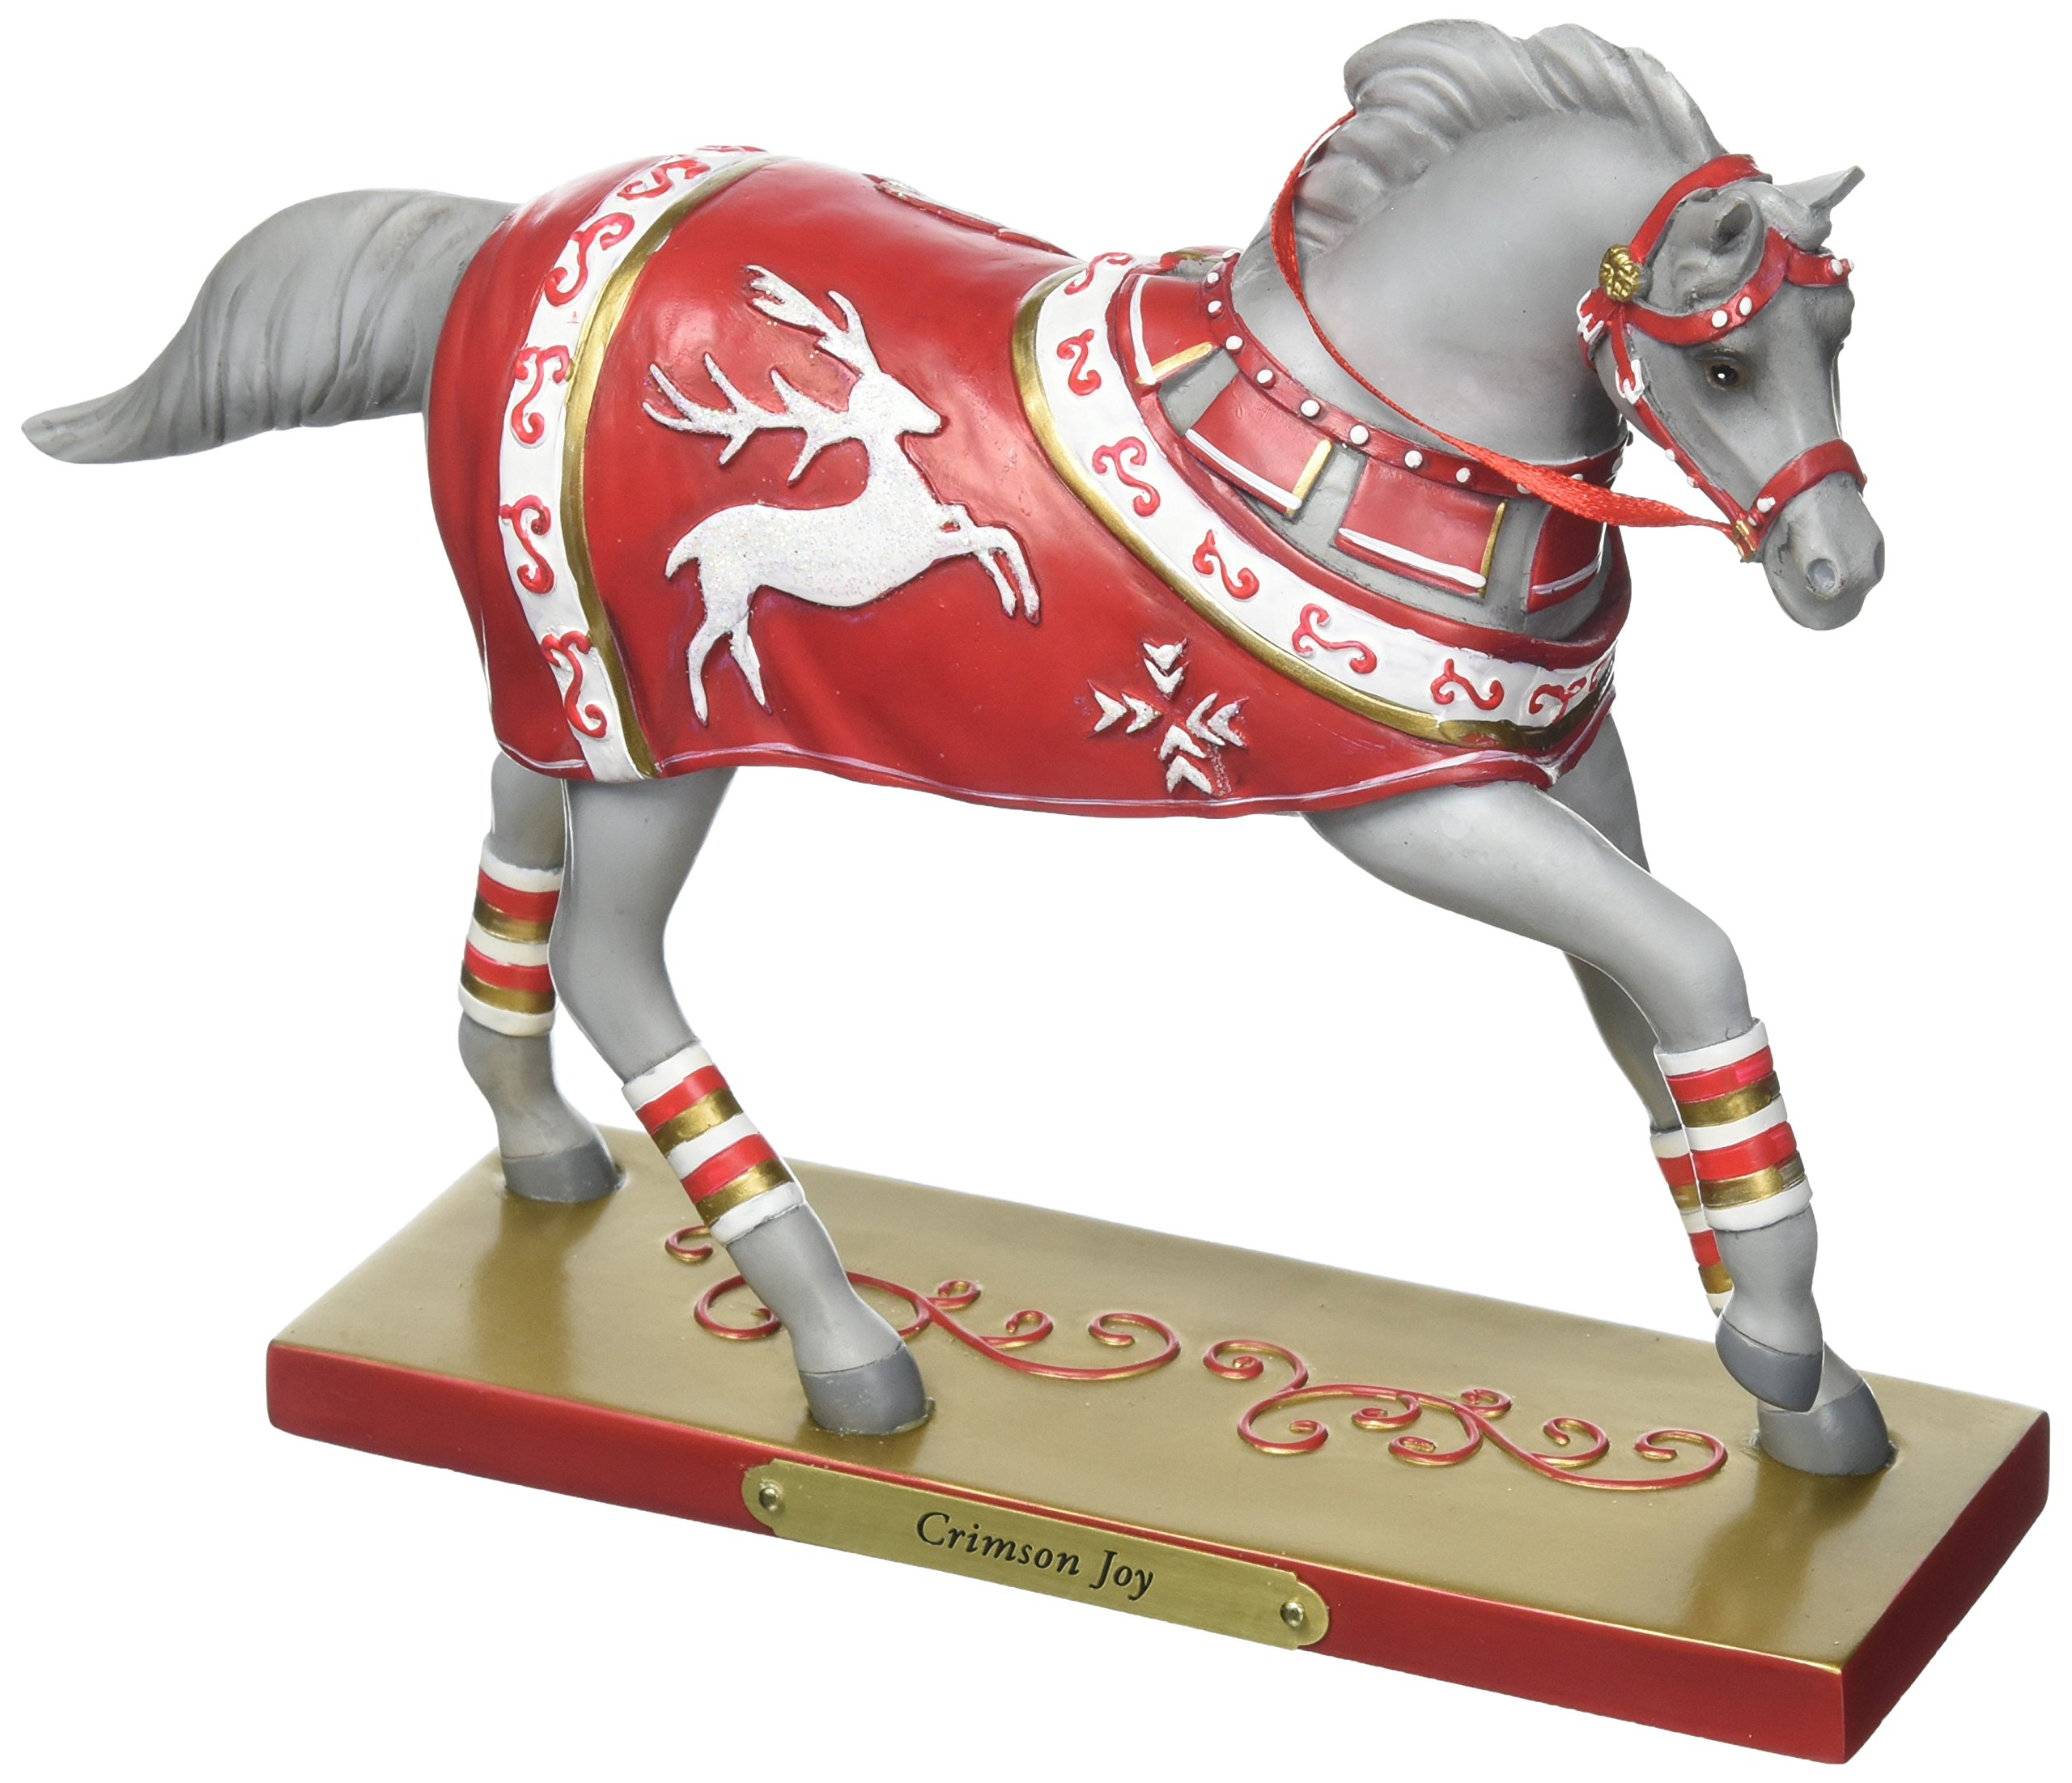 "Enesco Trail of Painted Ponies ""Crimson Joy"" Stone Resin Figurine, 6.5"""